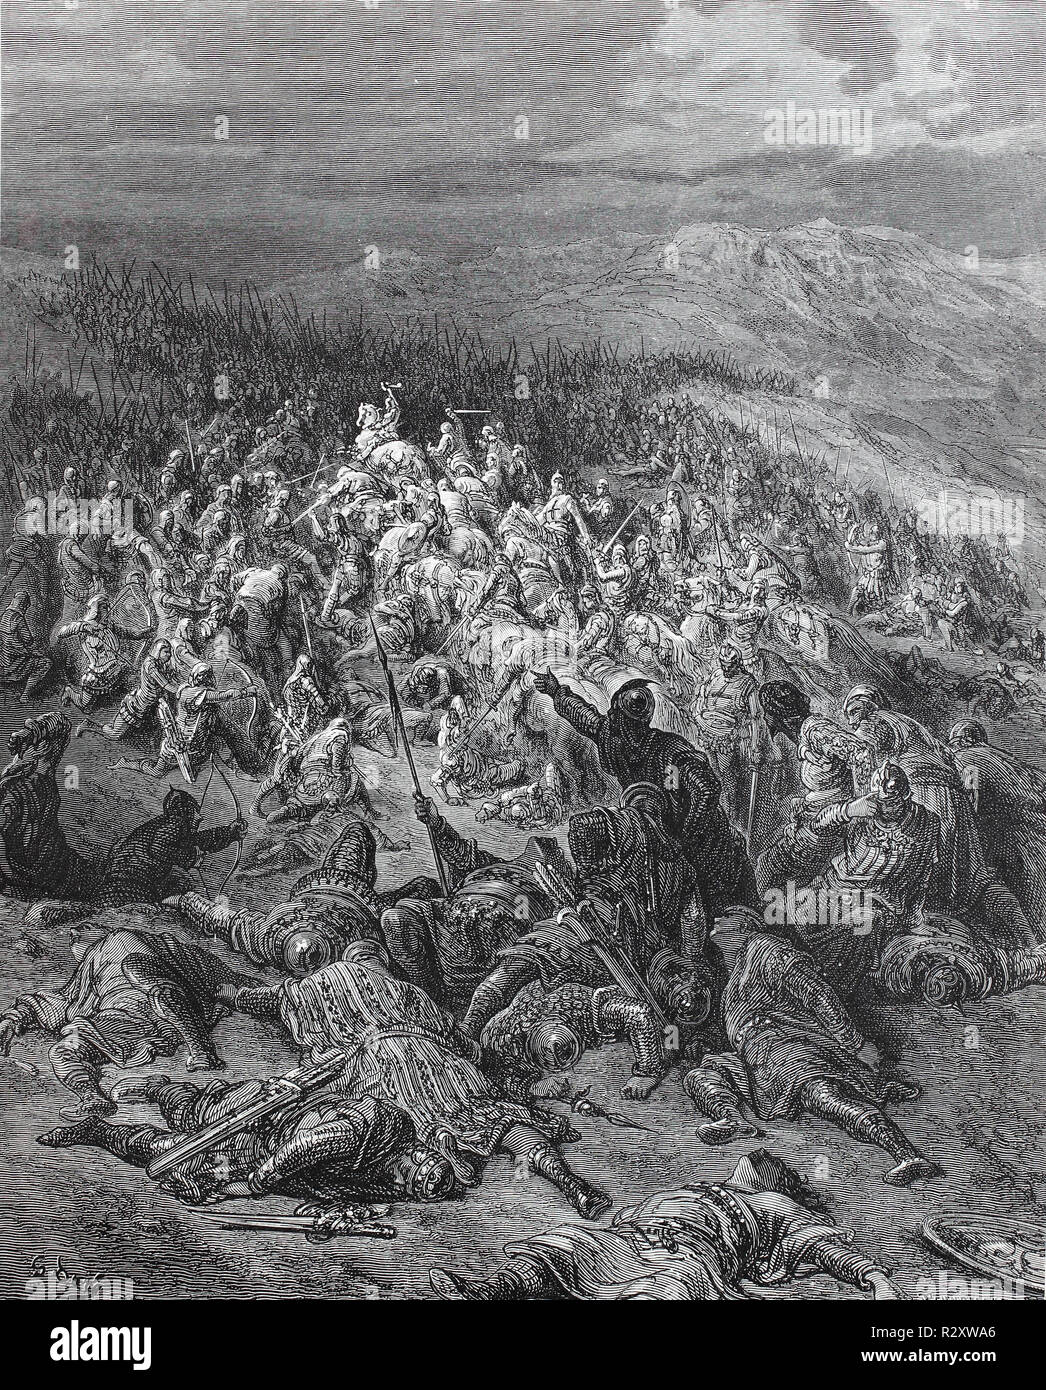 Digital improved reproduction, The Battle of Ascalon took place on 12 August 1099 shortly after the capture of Jerusalem, and is often considered the last action of the First Crusade. Die Schlacht bei Ascalon, from an original print published in the 19th century - Stock Image